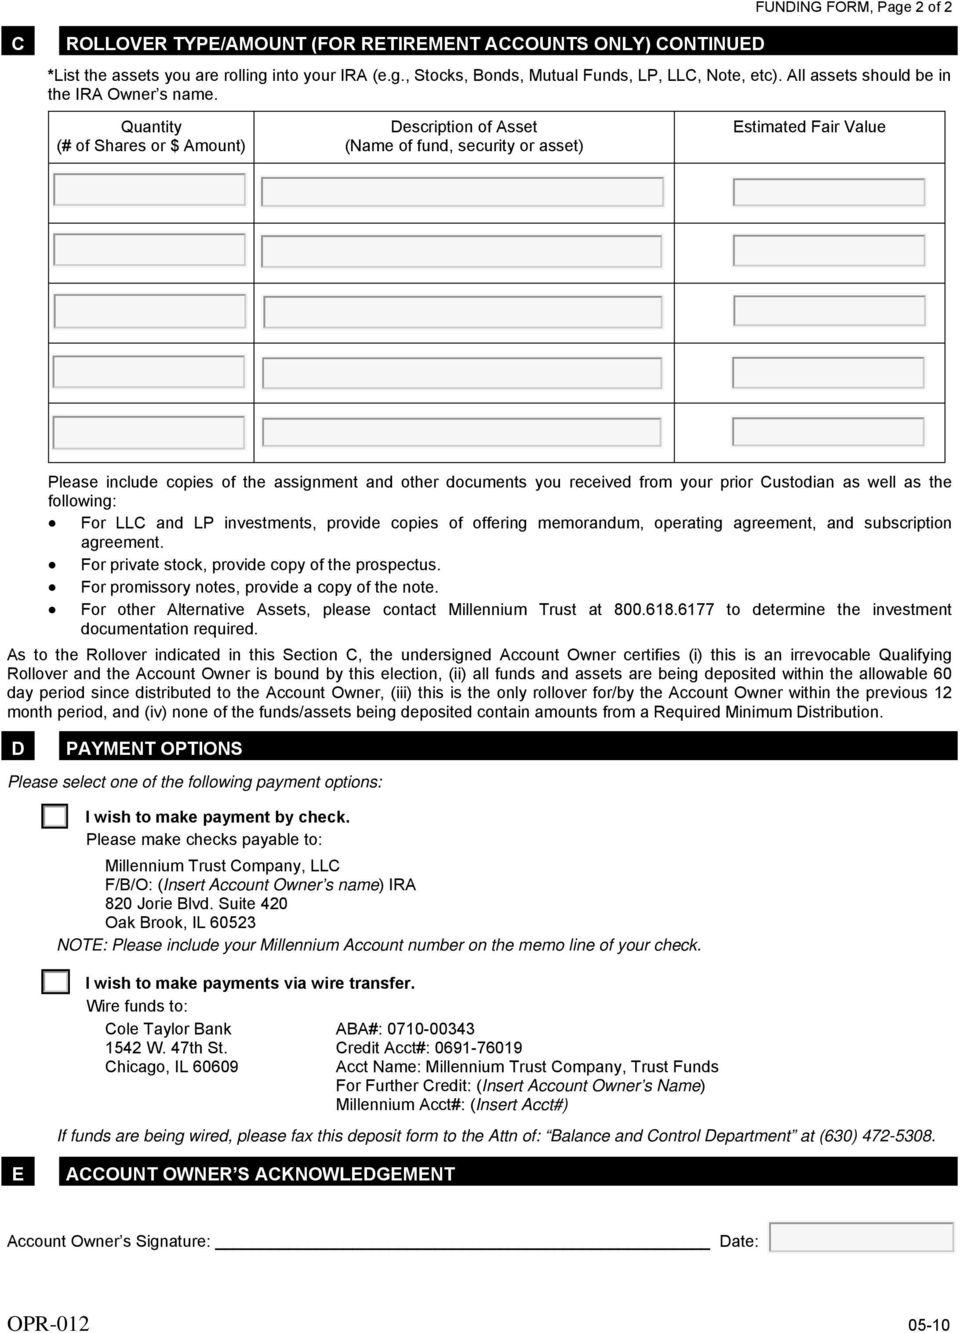 Self Directed Ira Fidelity Millennium Trust Company >> Important Instructions For Completing These Forms Pdf